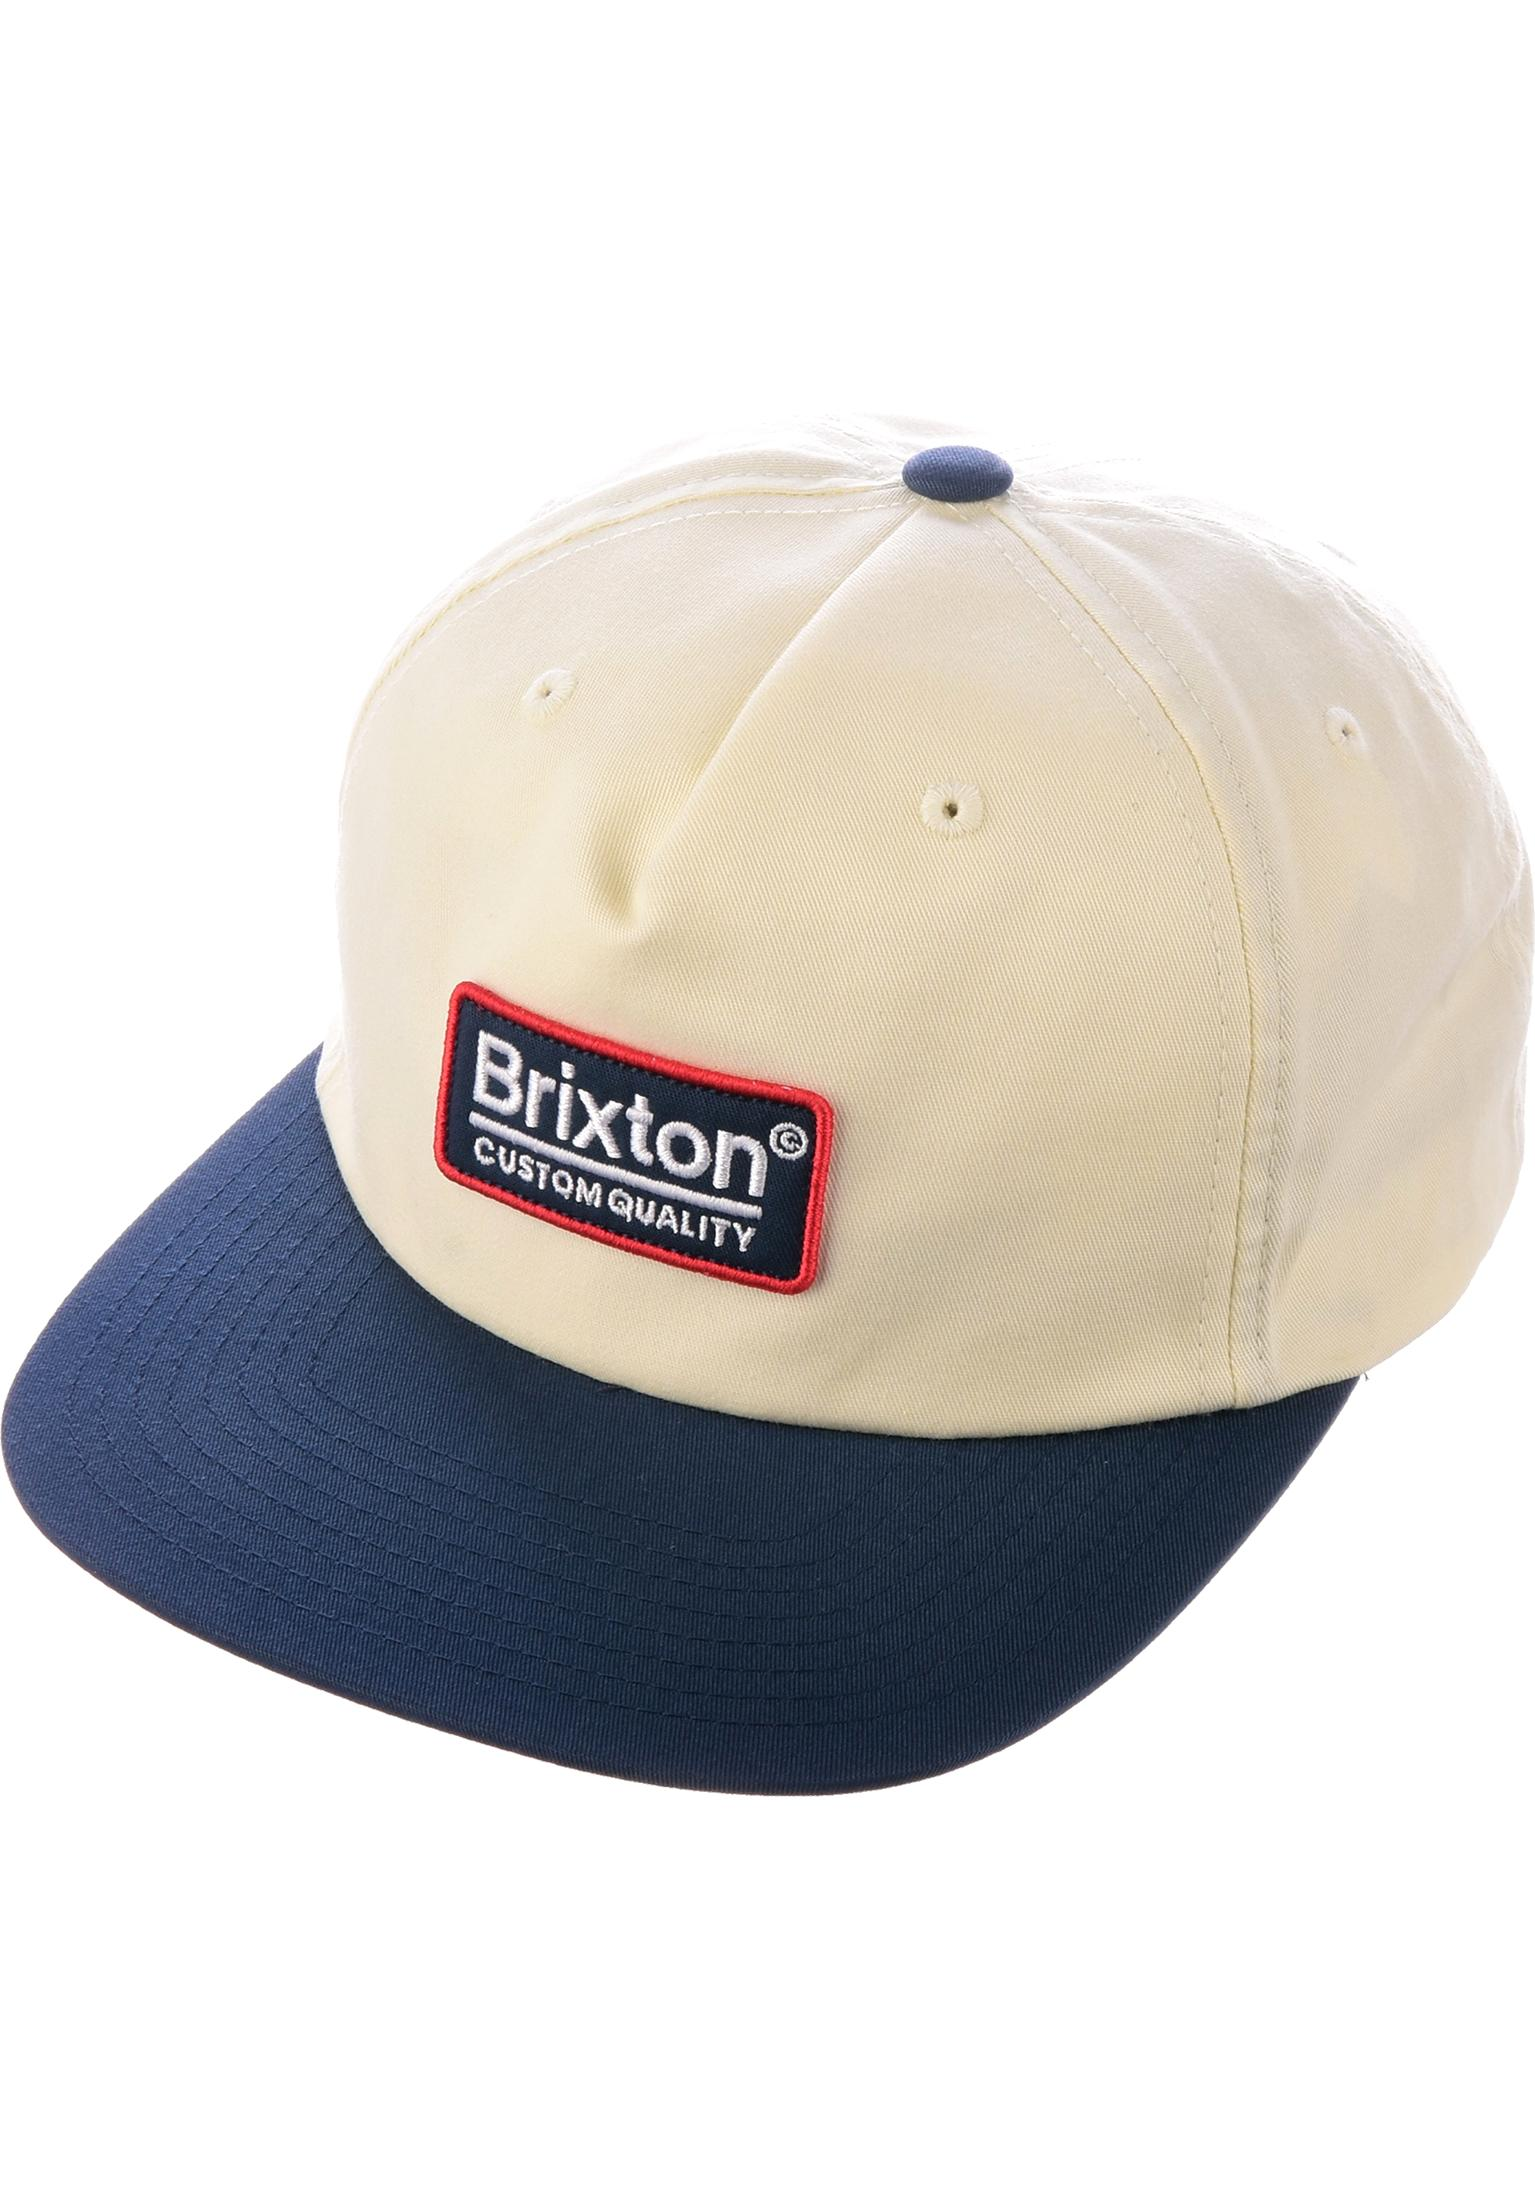 9d2678d3695 Palmer Brixton Caps in offwhite-navy for Men